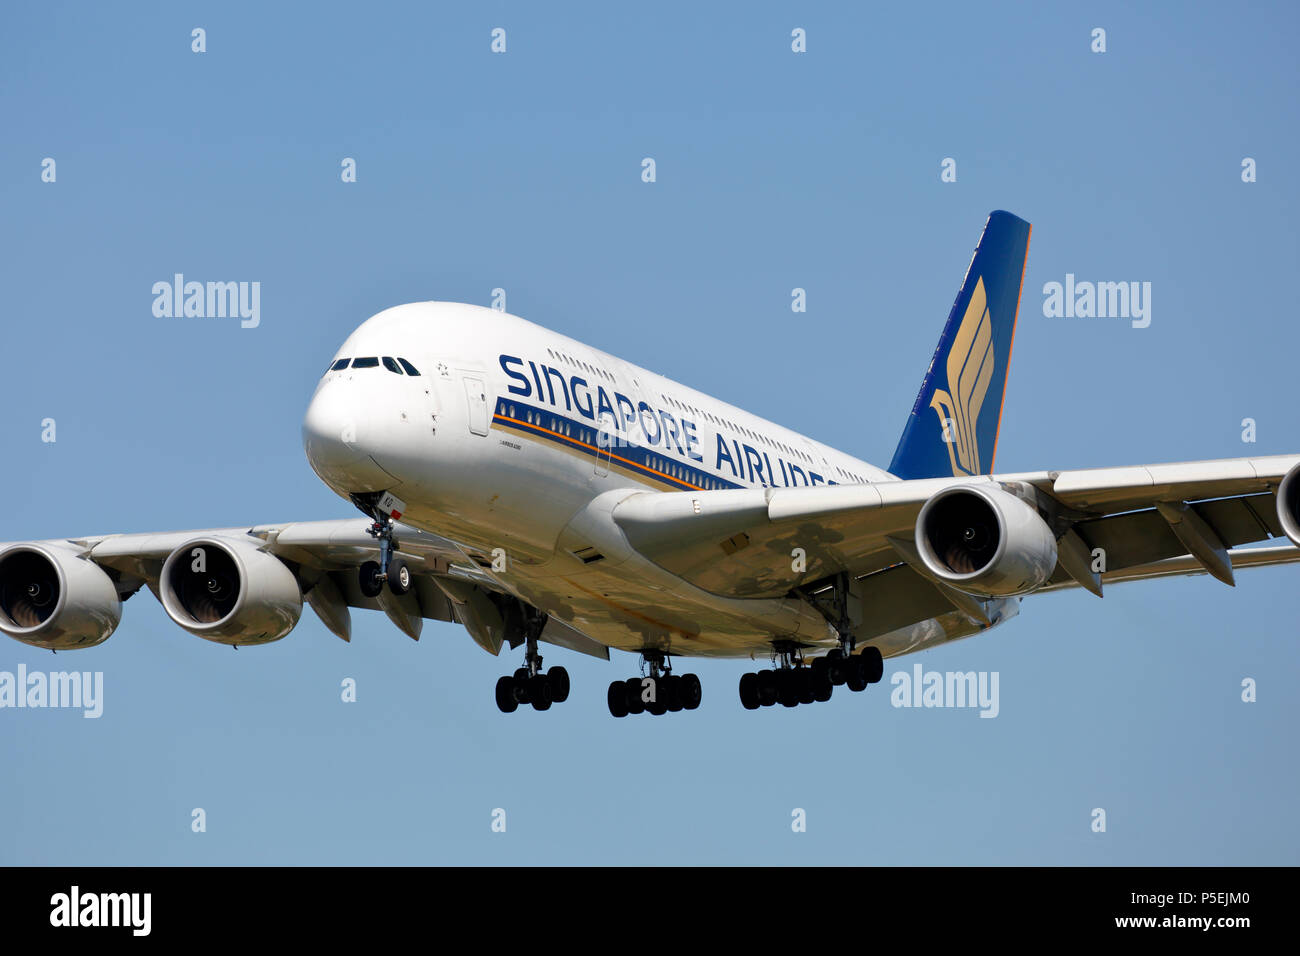 9V-SKQ Singapore Airlines Airbus A380-800 on approach to London Heathrow 27L runway after a long haul flight - Stock Image